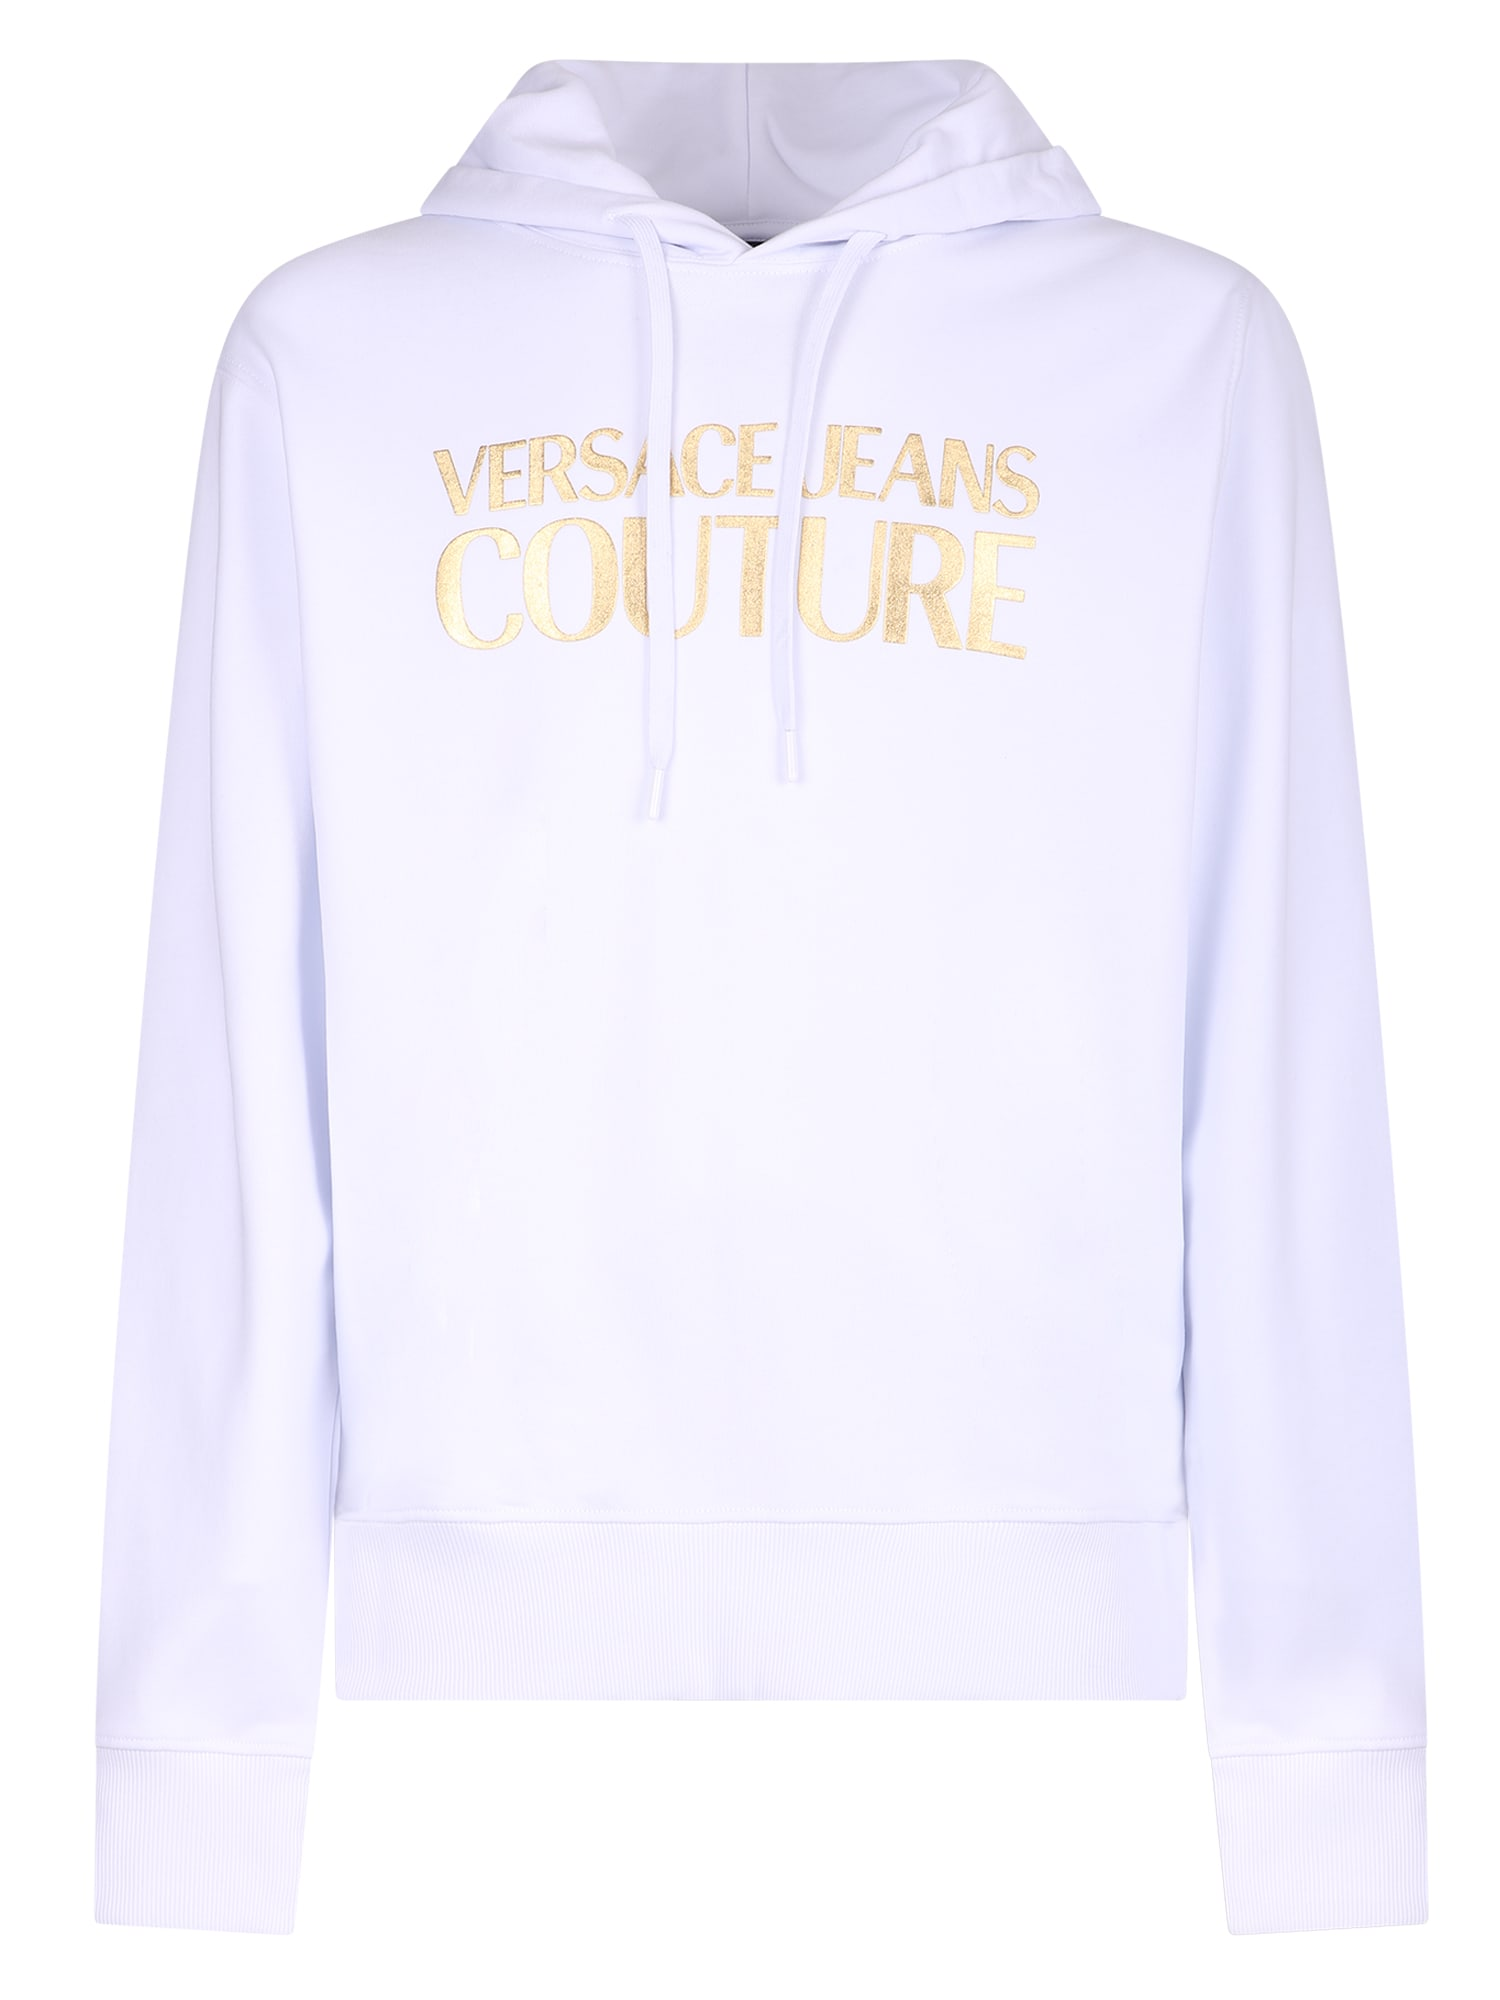 Versace Jeans Couture Printed Cotton Hoodie